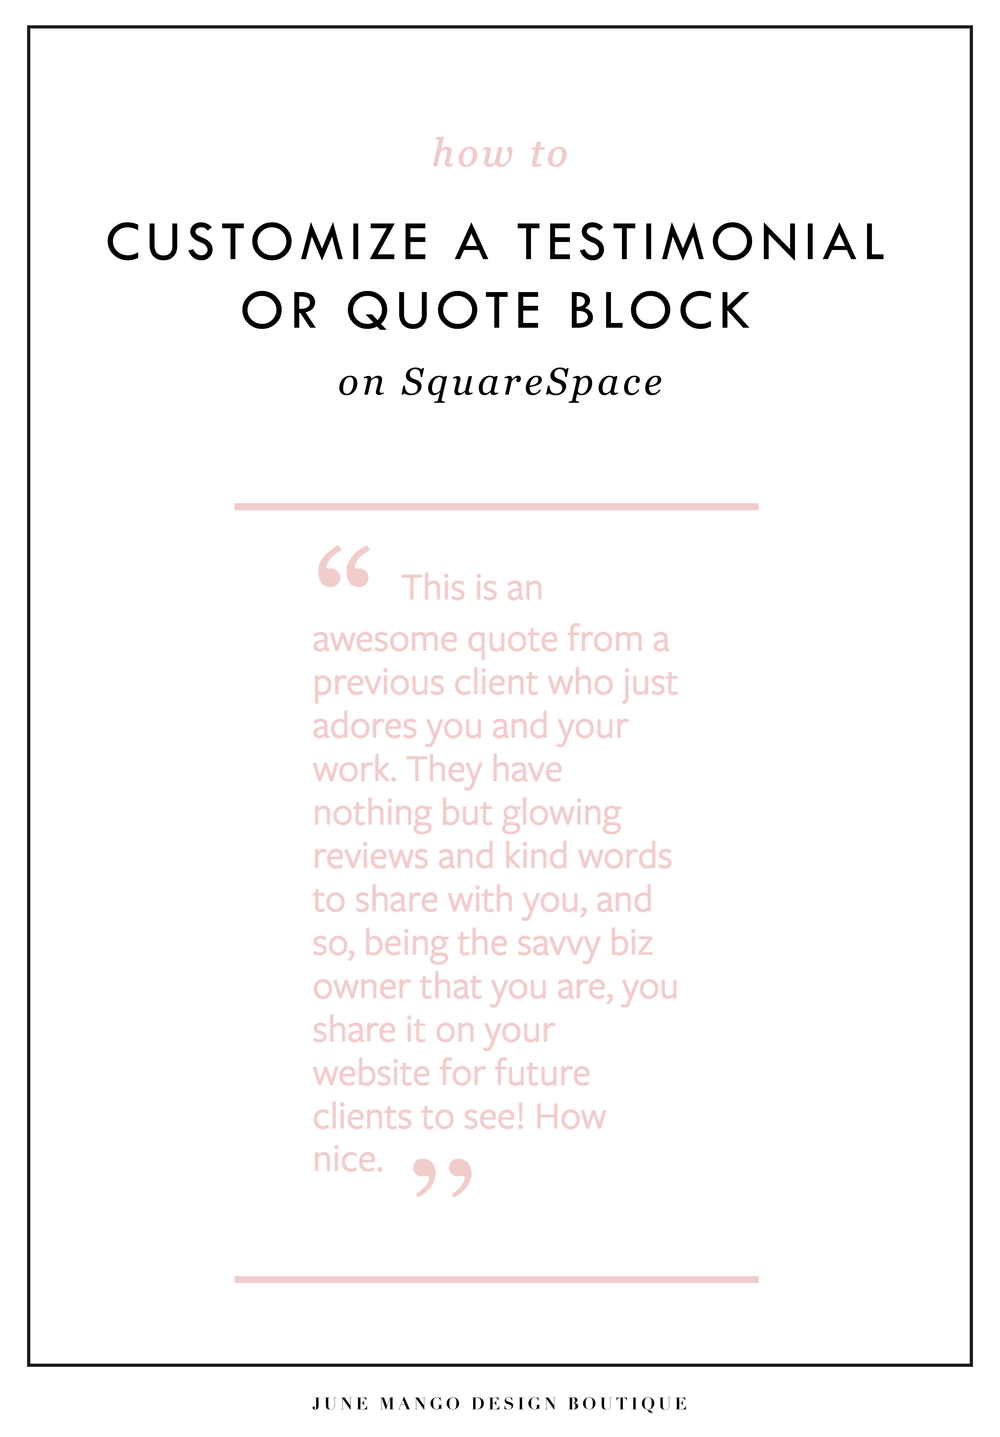 customize-quote-block-testimonial-squarespace-05.png